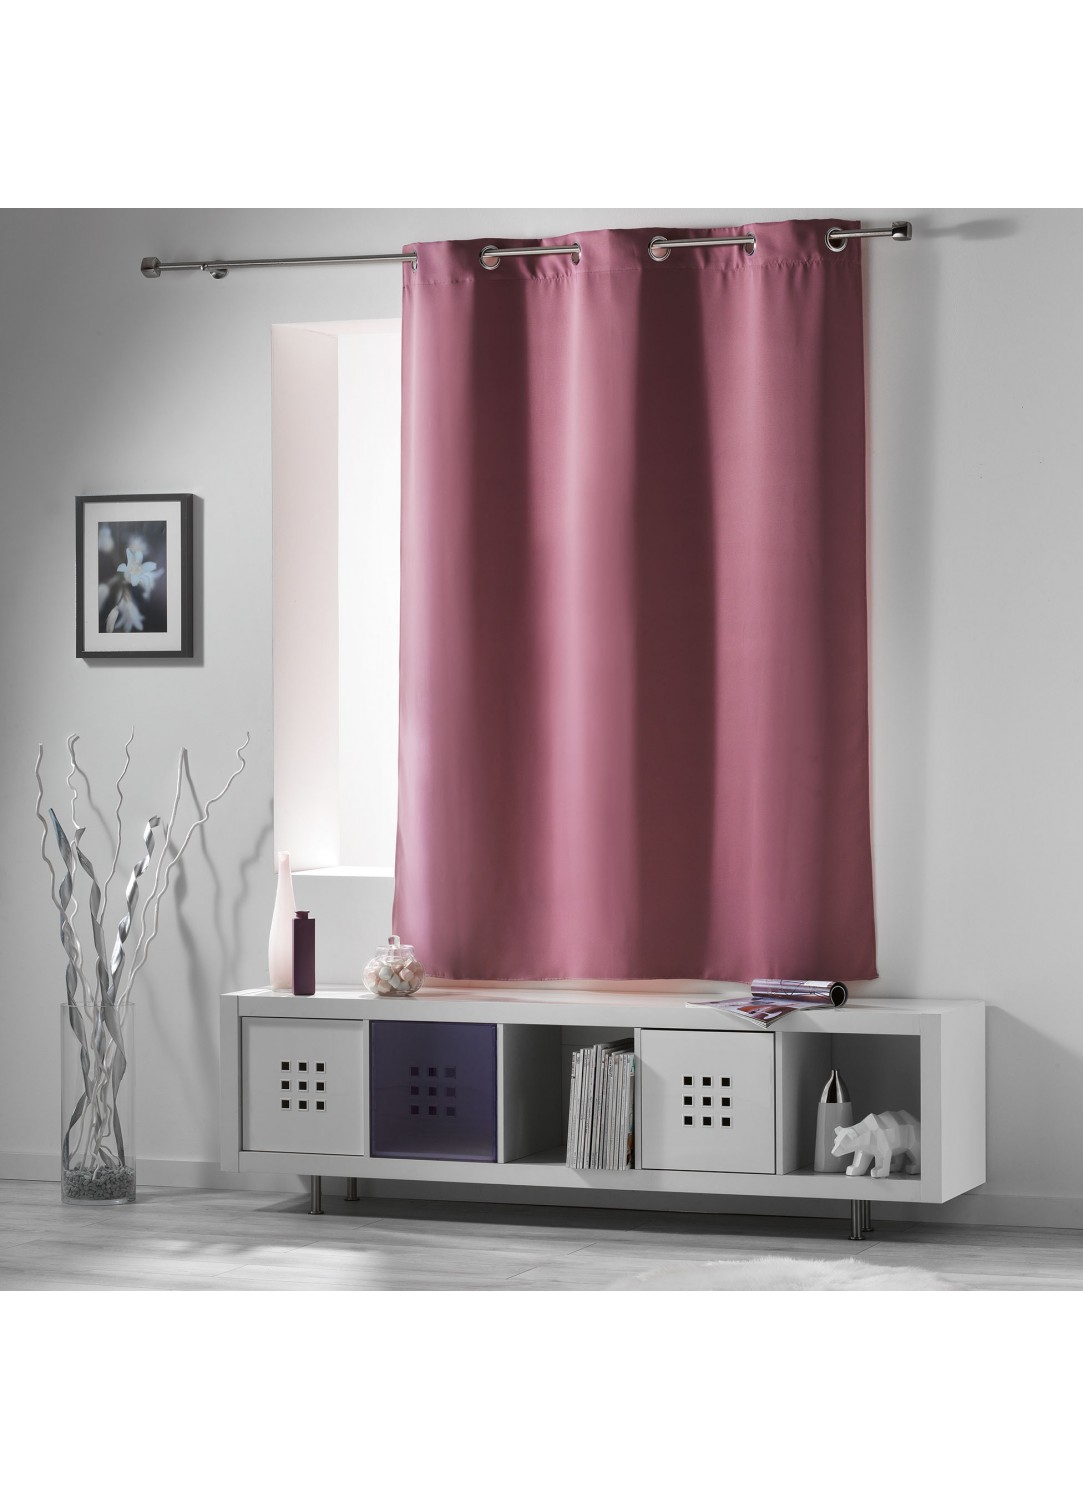 rideau occultant radiateur petite hauteur drag e neige. Black Bedroom Furniture Sets. Home Design Ideas